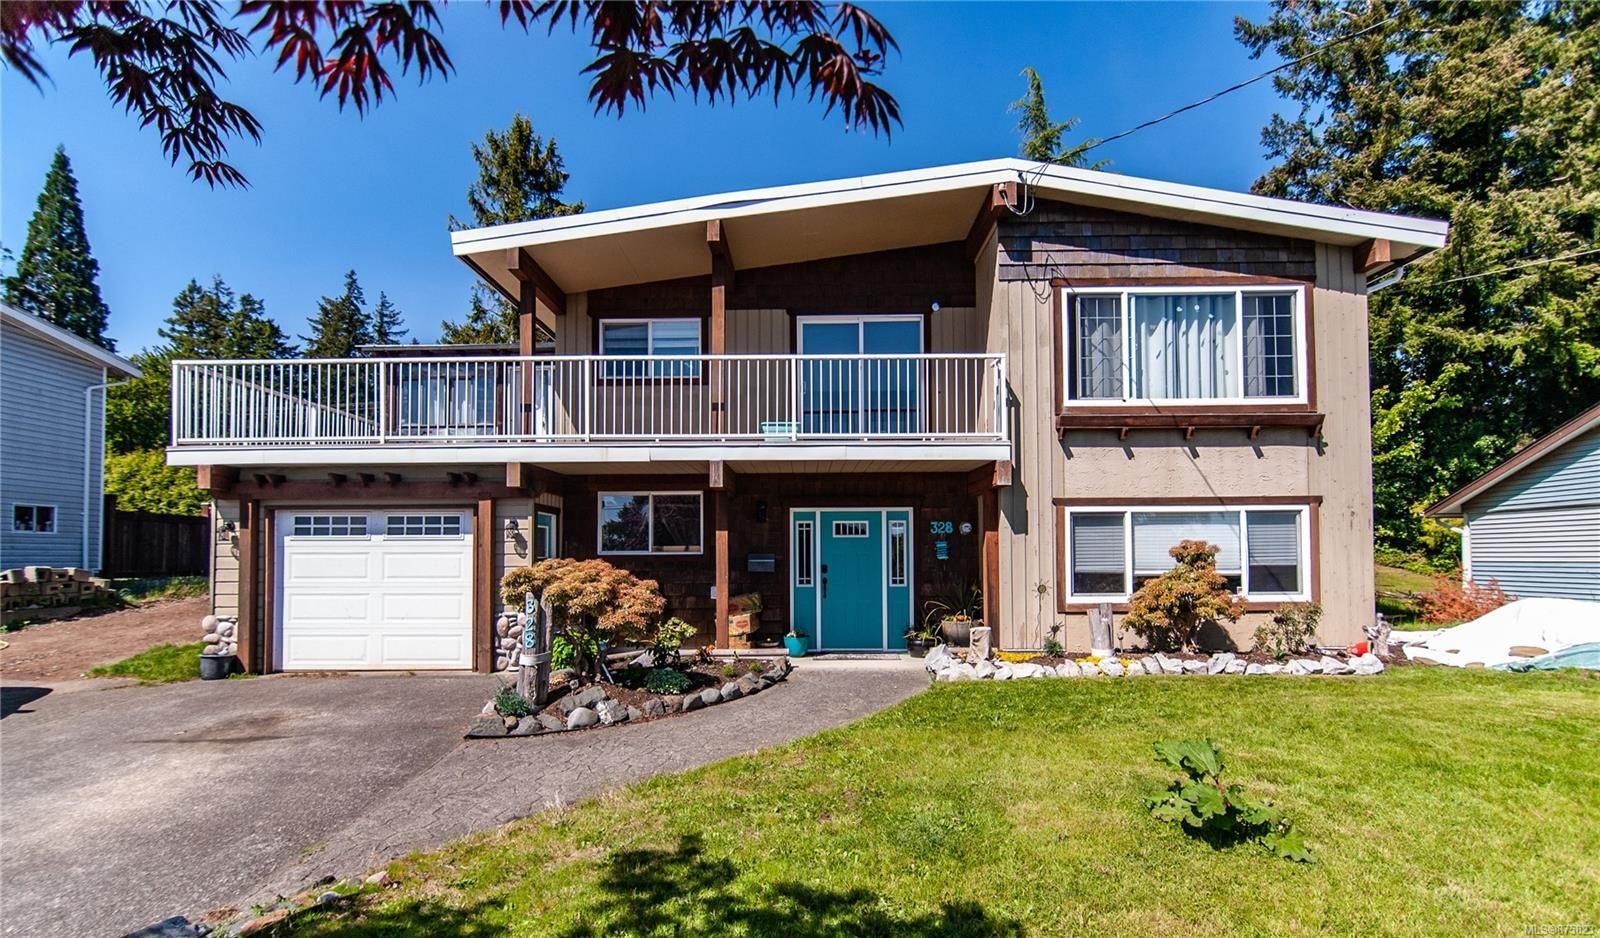 Main Photo: 328 S McCarthy St in : CR Campbell River Central House for sale (Campbell River)  : MLS®# 875823